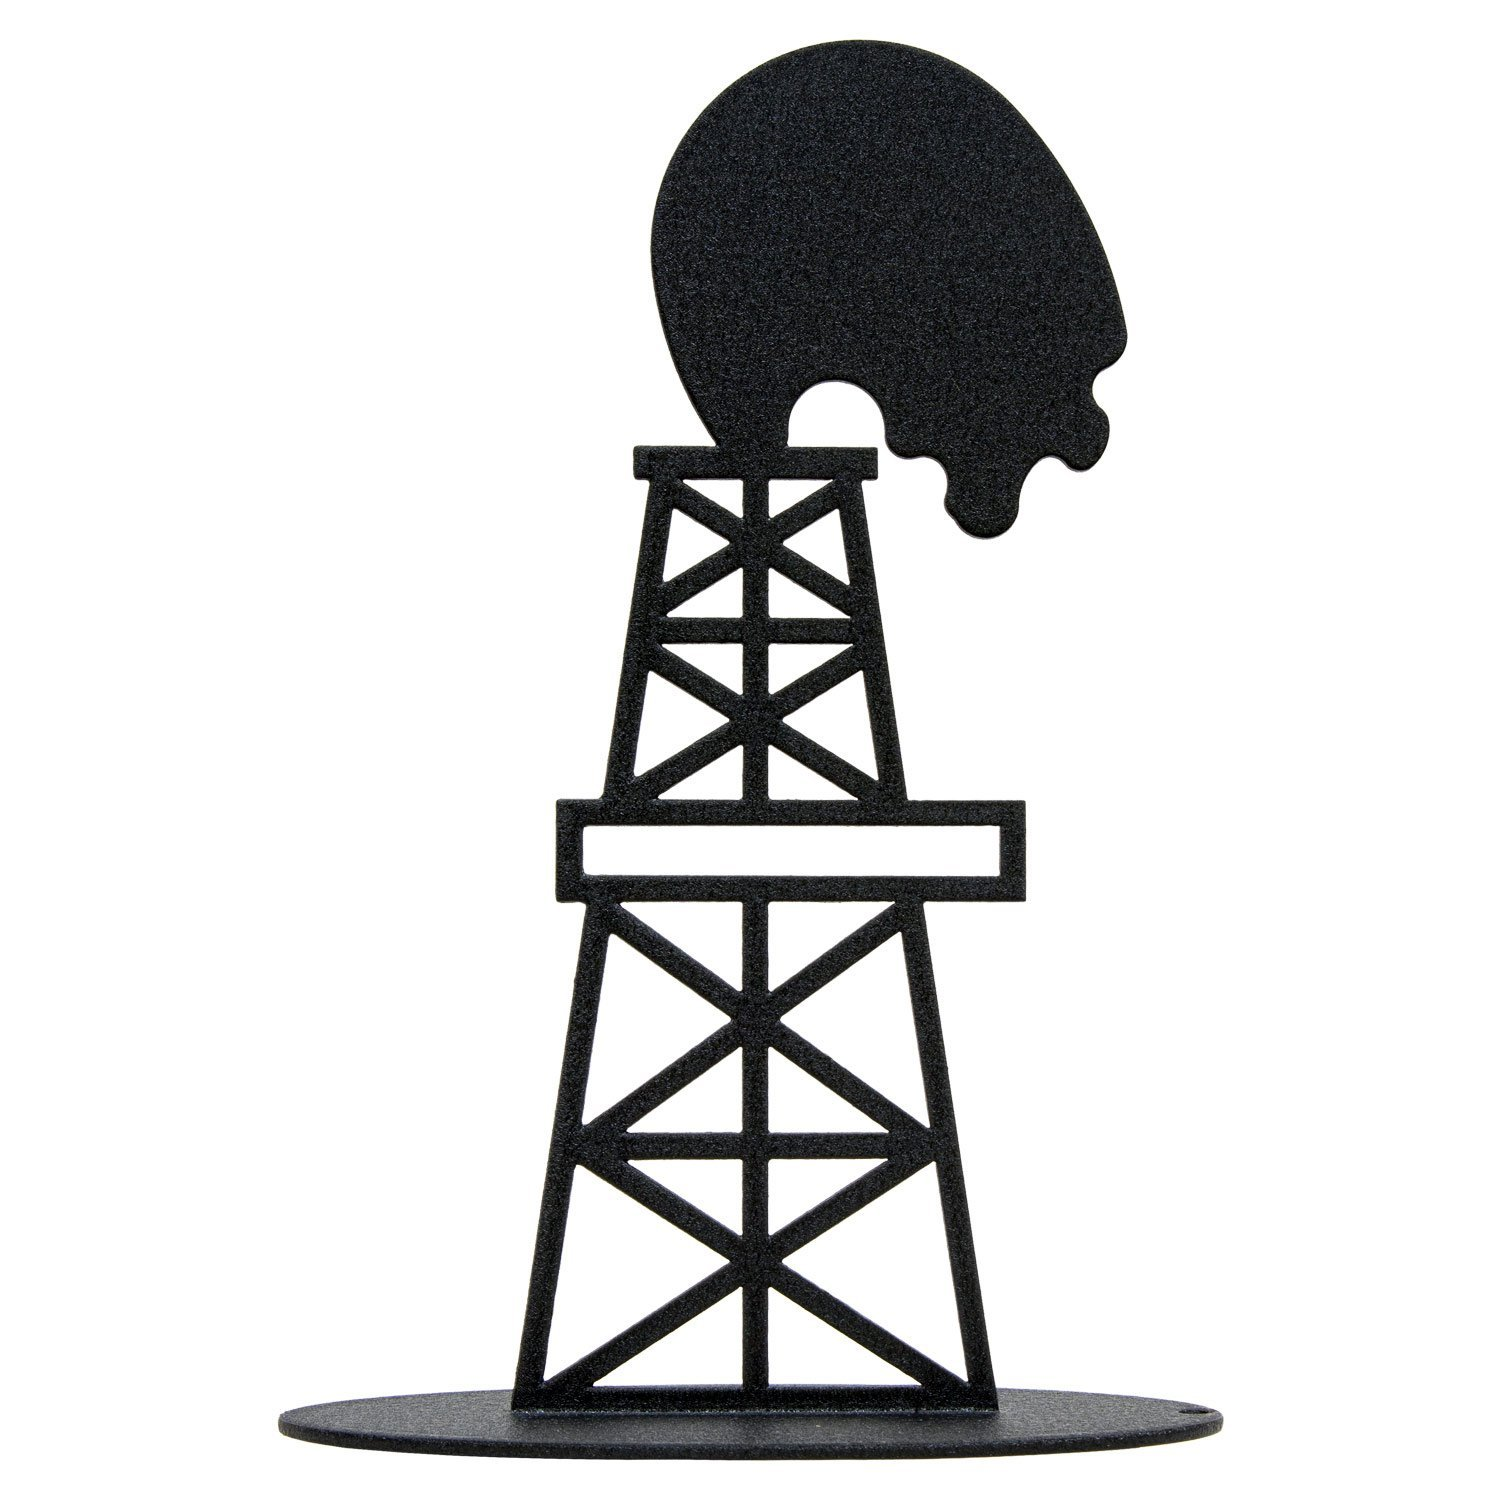 1500x1500 Oil Derrick Centerpiece